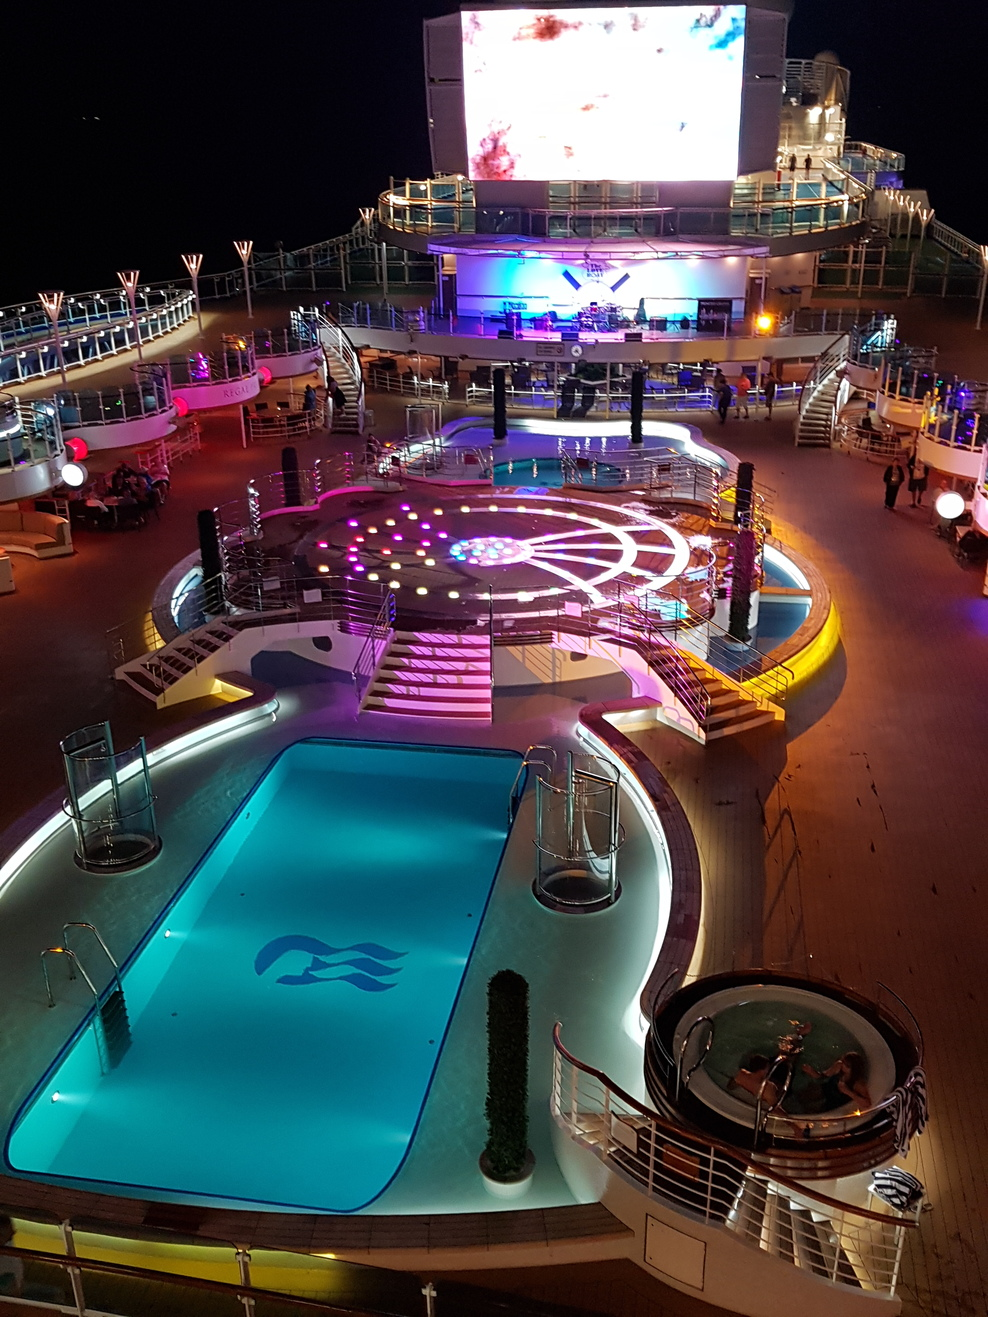 Beautiful pool deck at night!